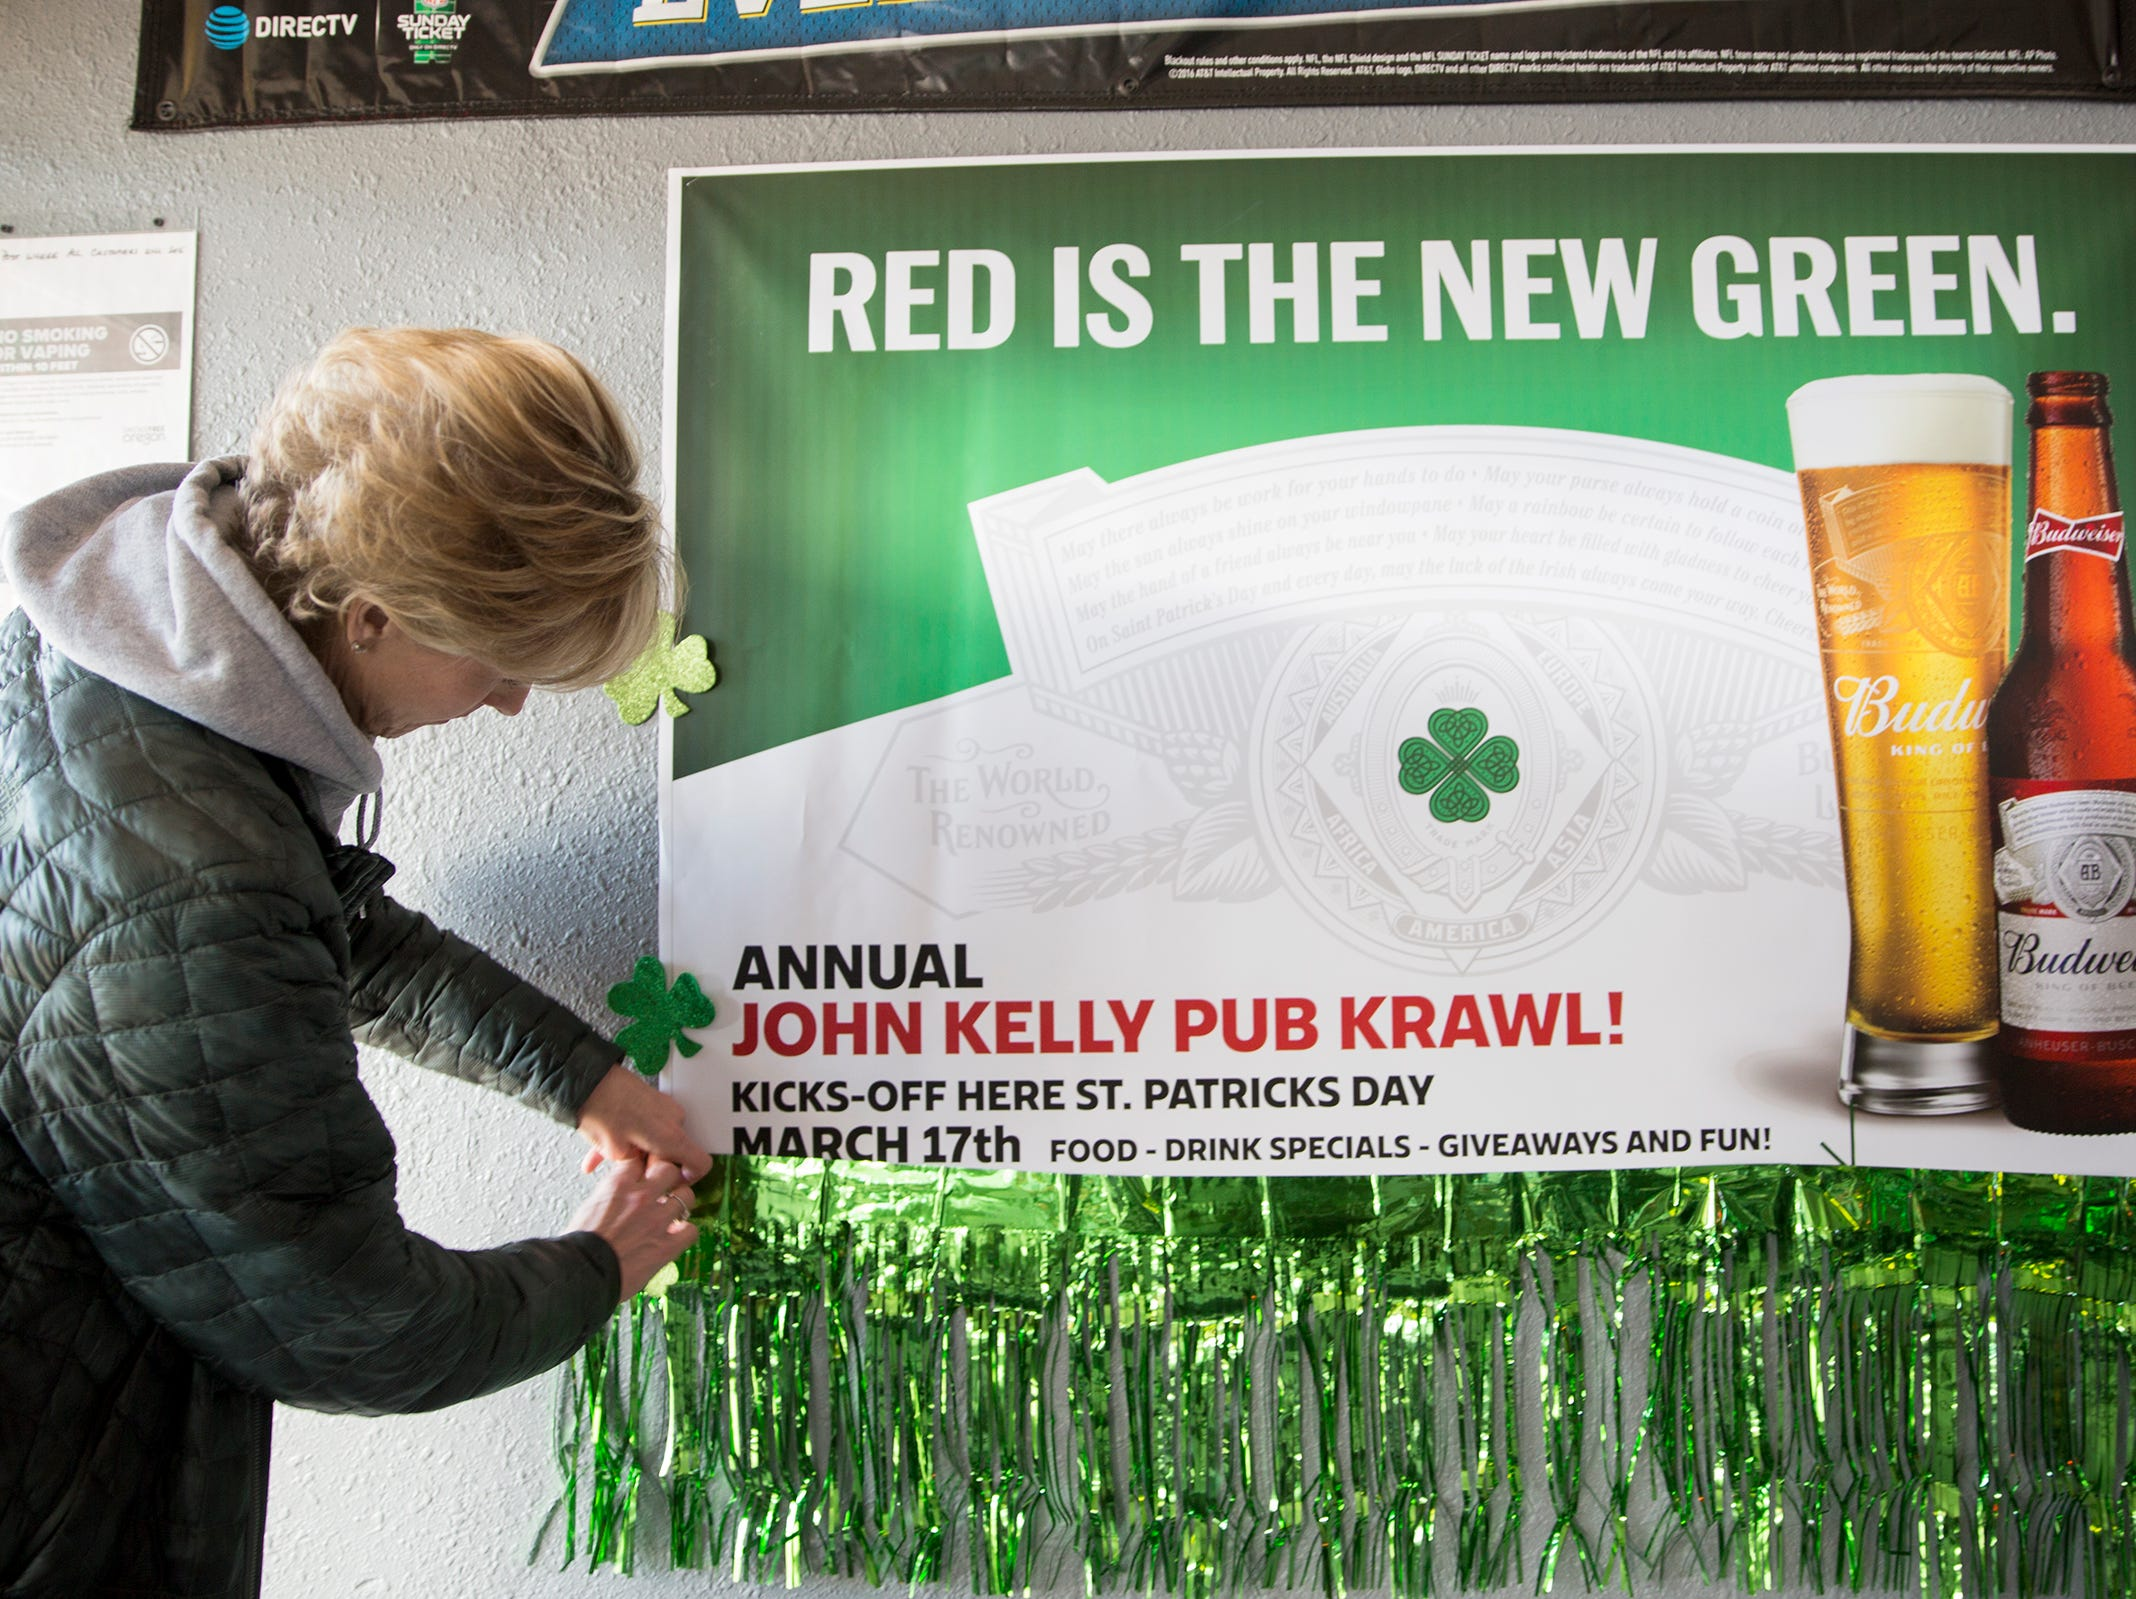 Peggy Kelly fixes the promotional sign and decorations for the annual John J. Kelly Pub Krawl at Lucky's Pub in Salem on Thursday, Mach 7, 2019. The pub crawl will take place on March 17.